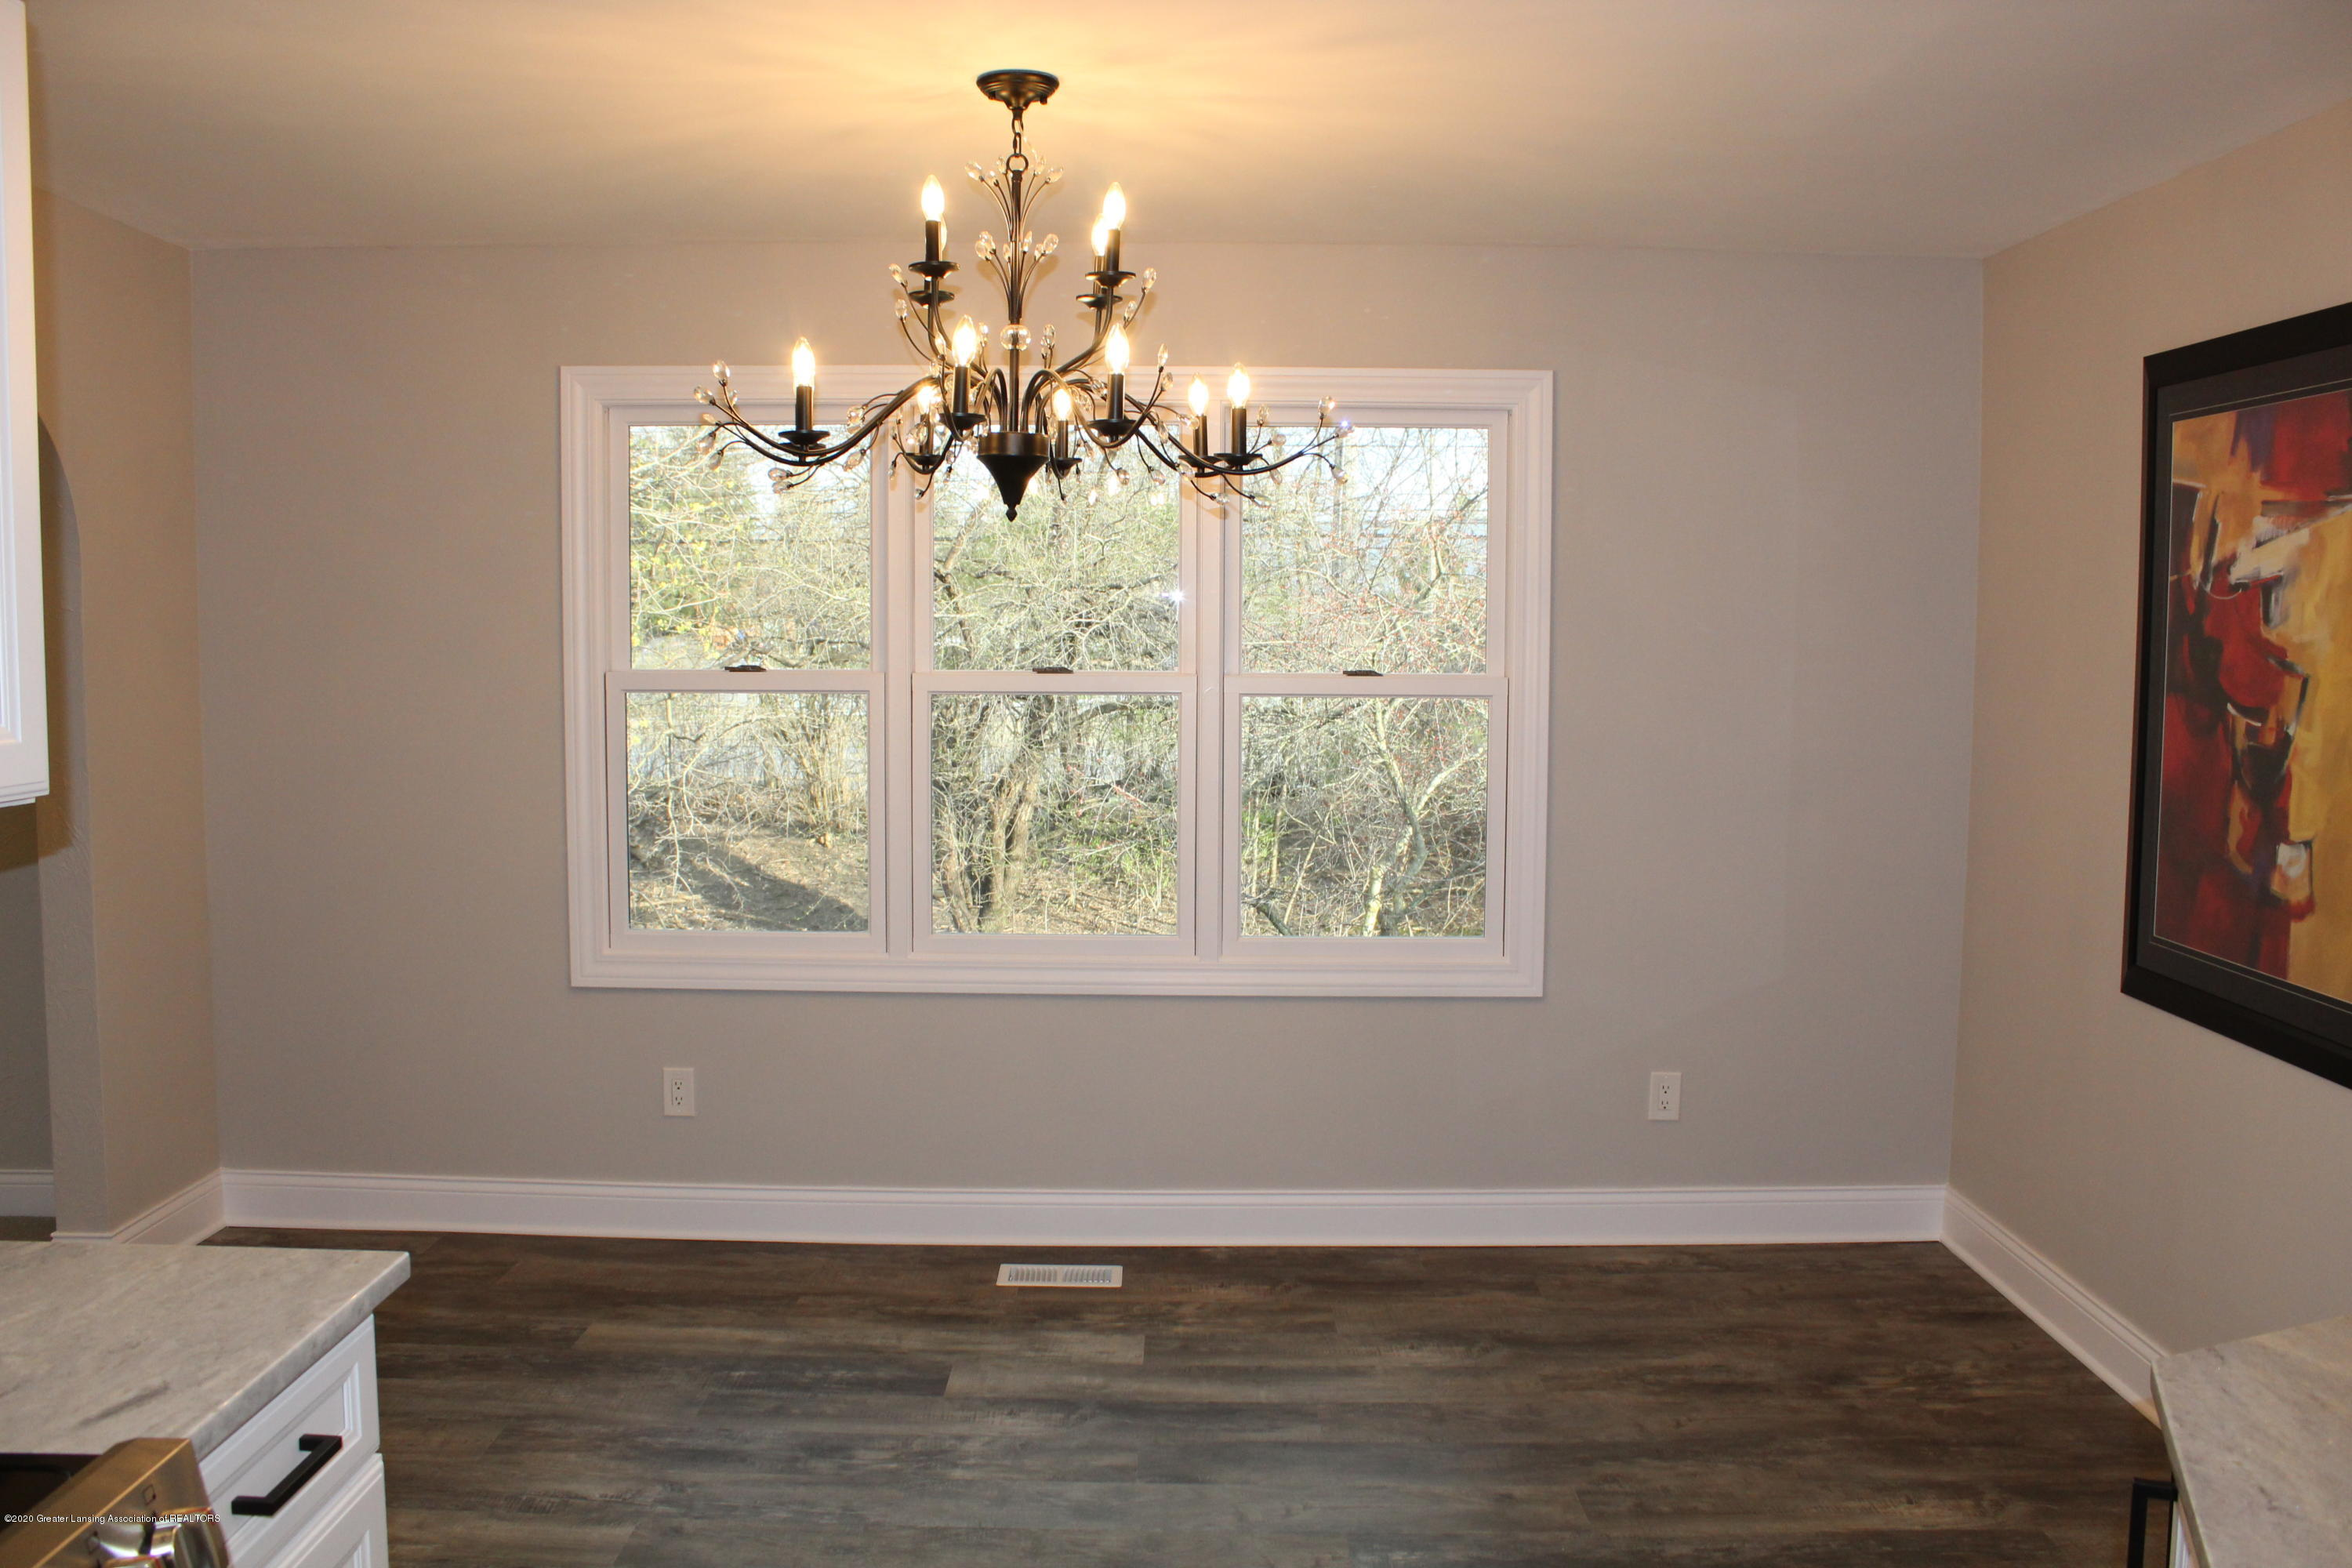 984 Whittier Dr - DINING ROOM - 37